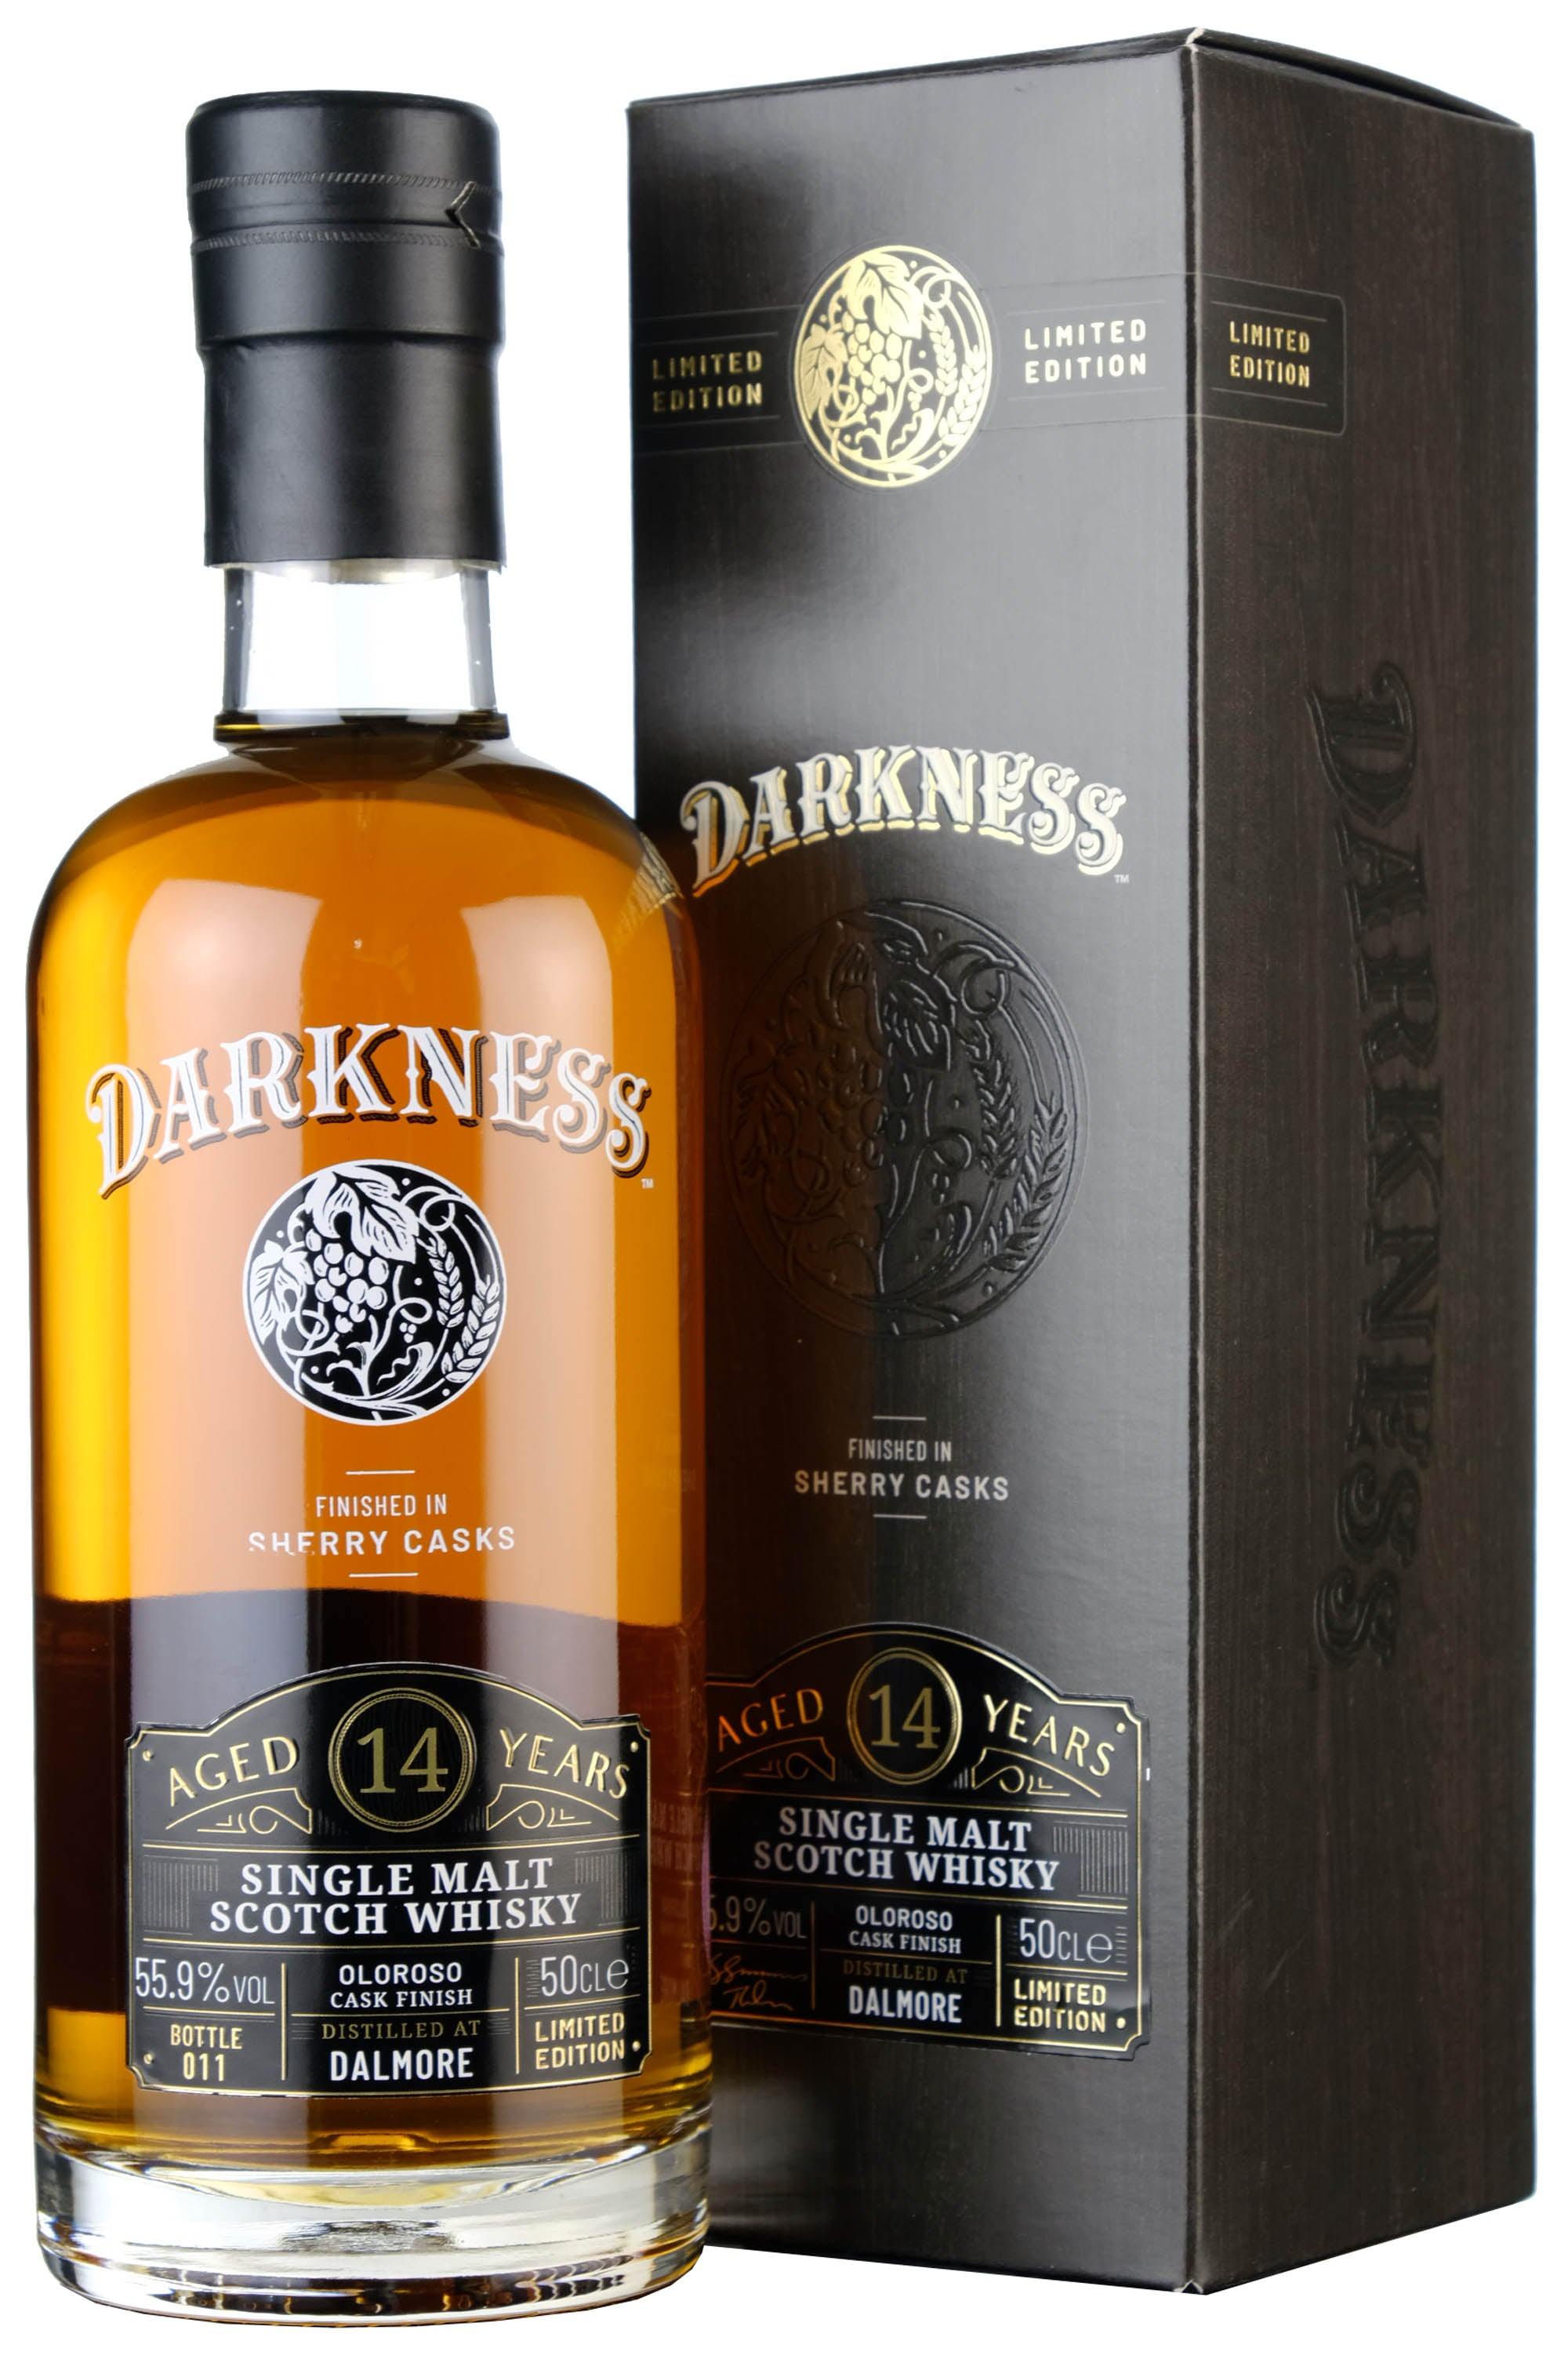 Dalmore 14 Year Old | Darkness